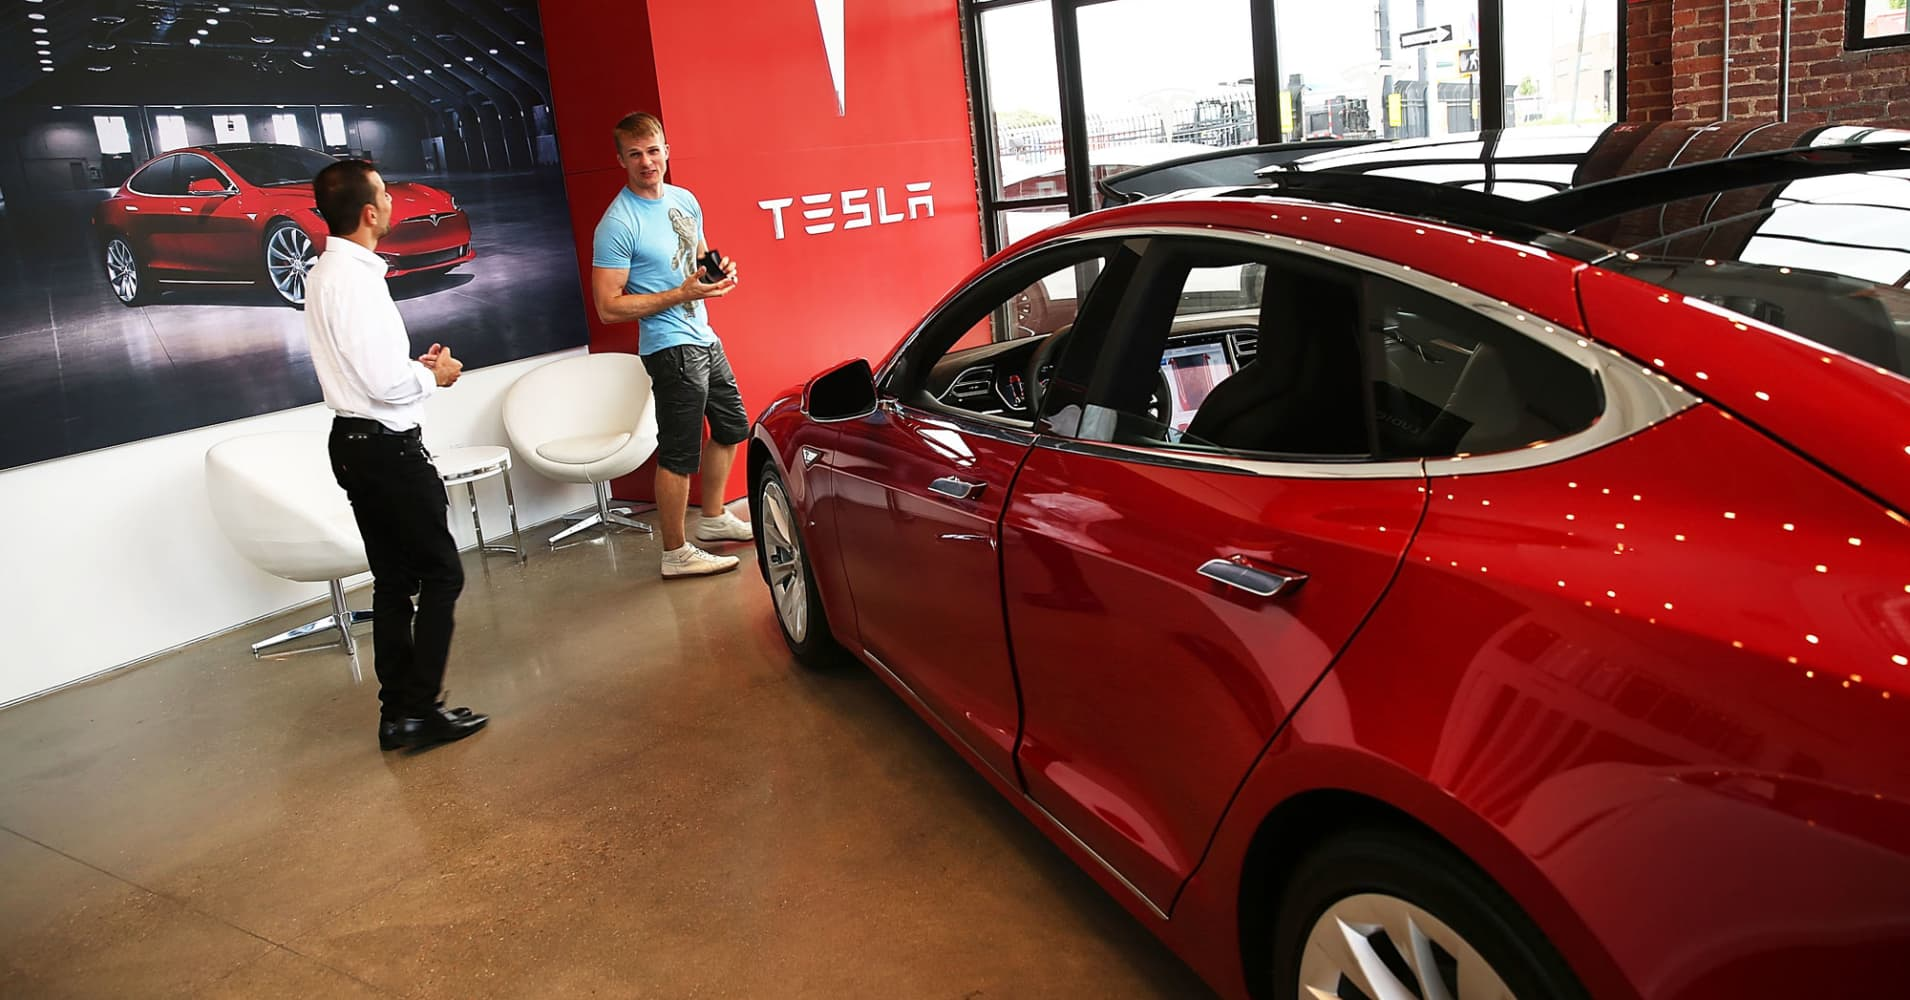 Sell Tesla because Model 3 sales will disappoint next year, Goldman Sachs says